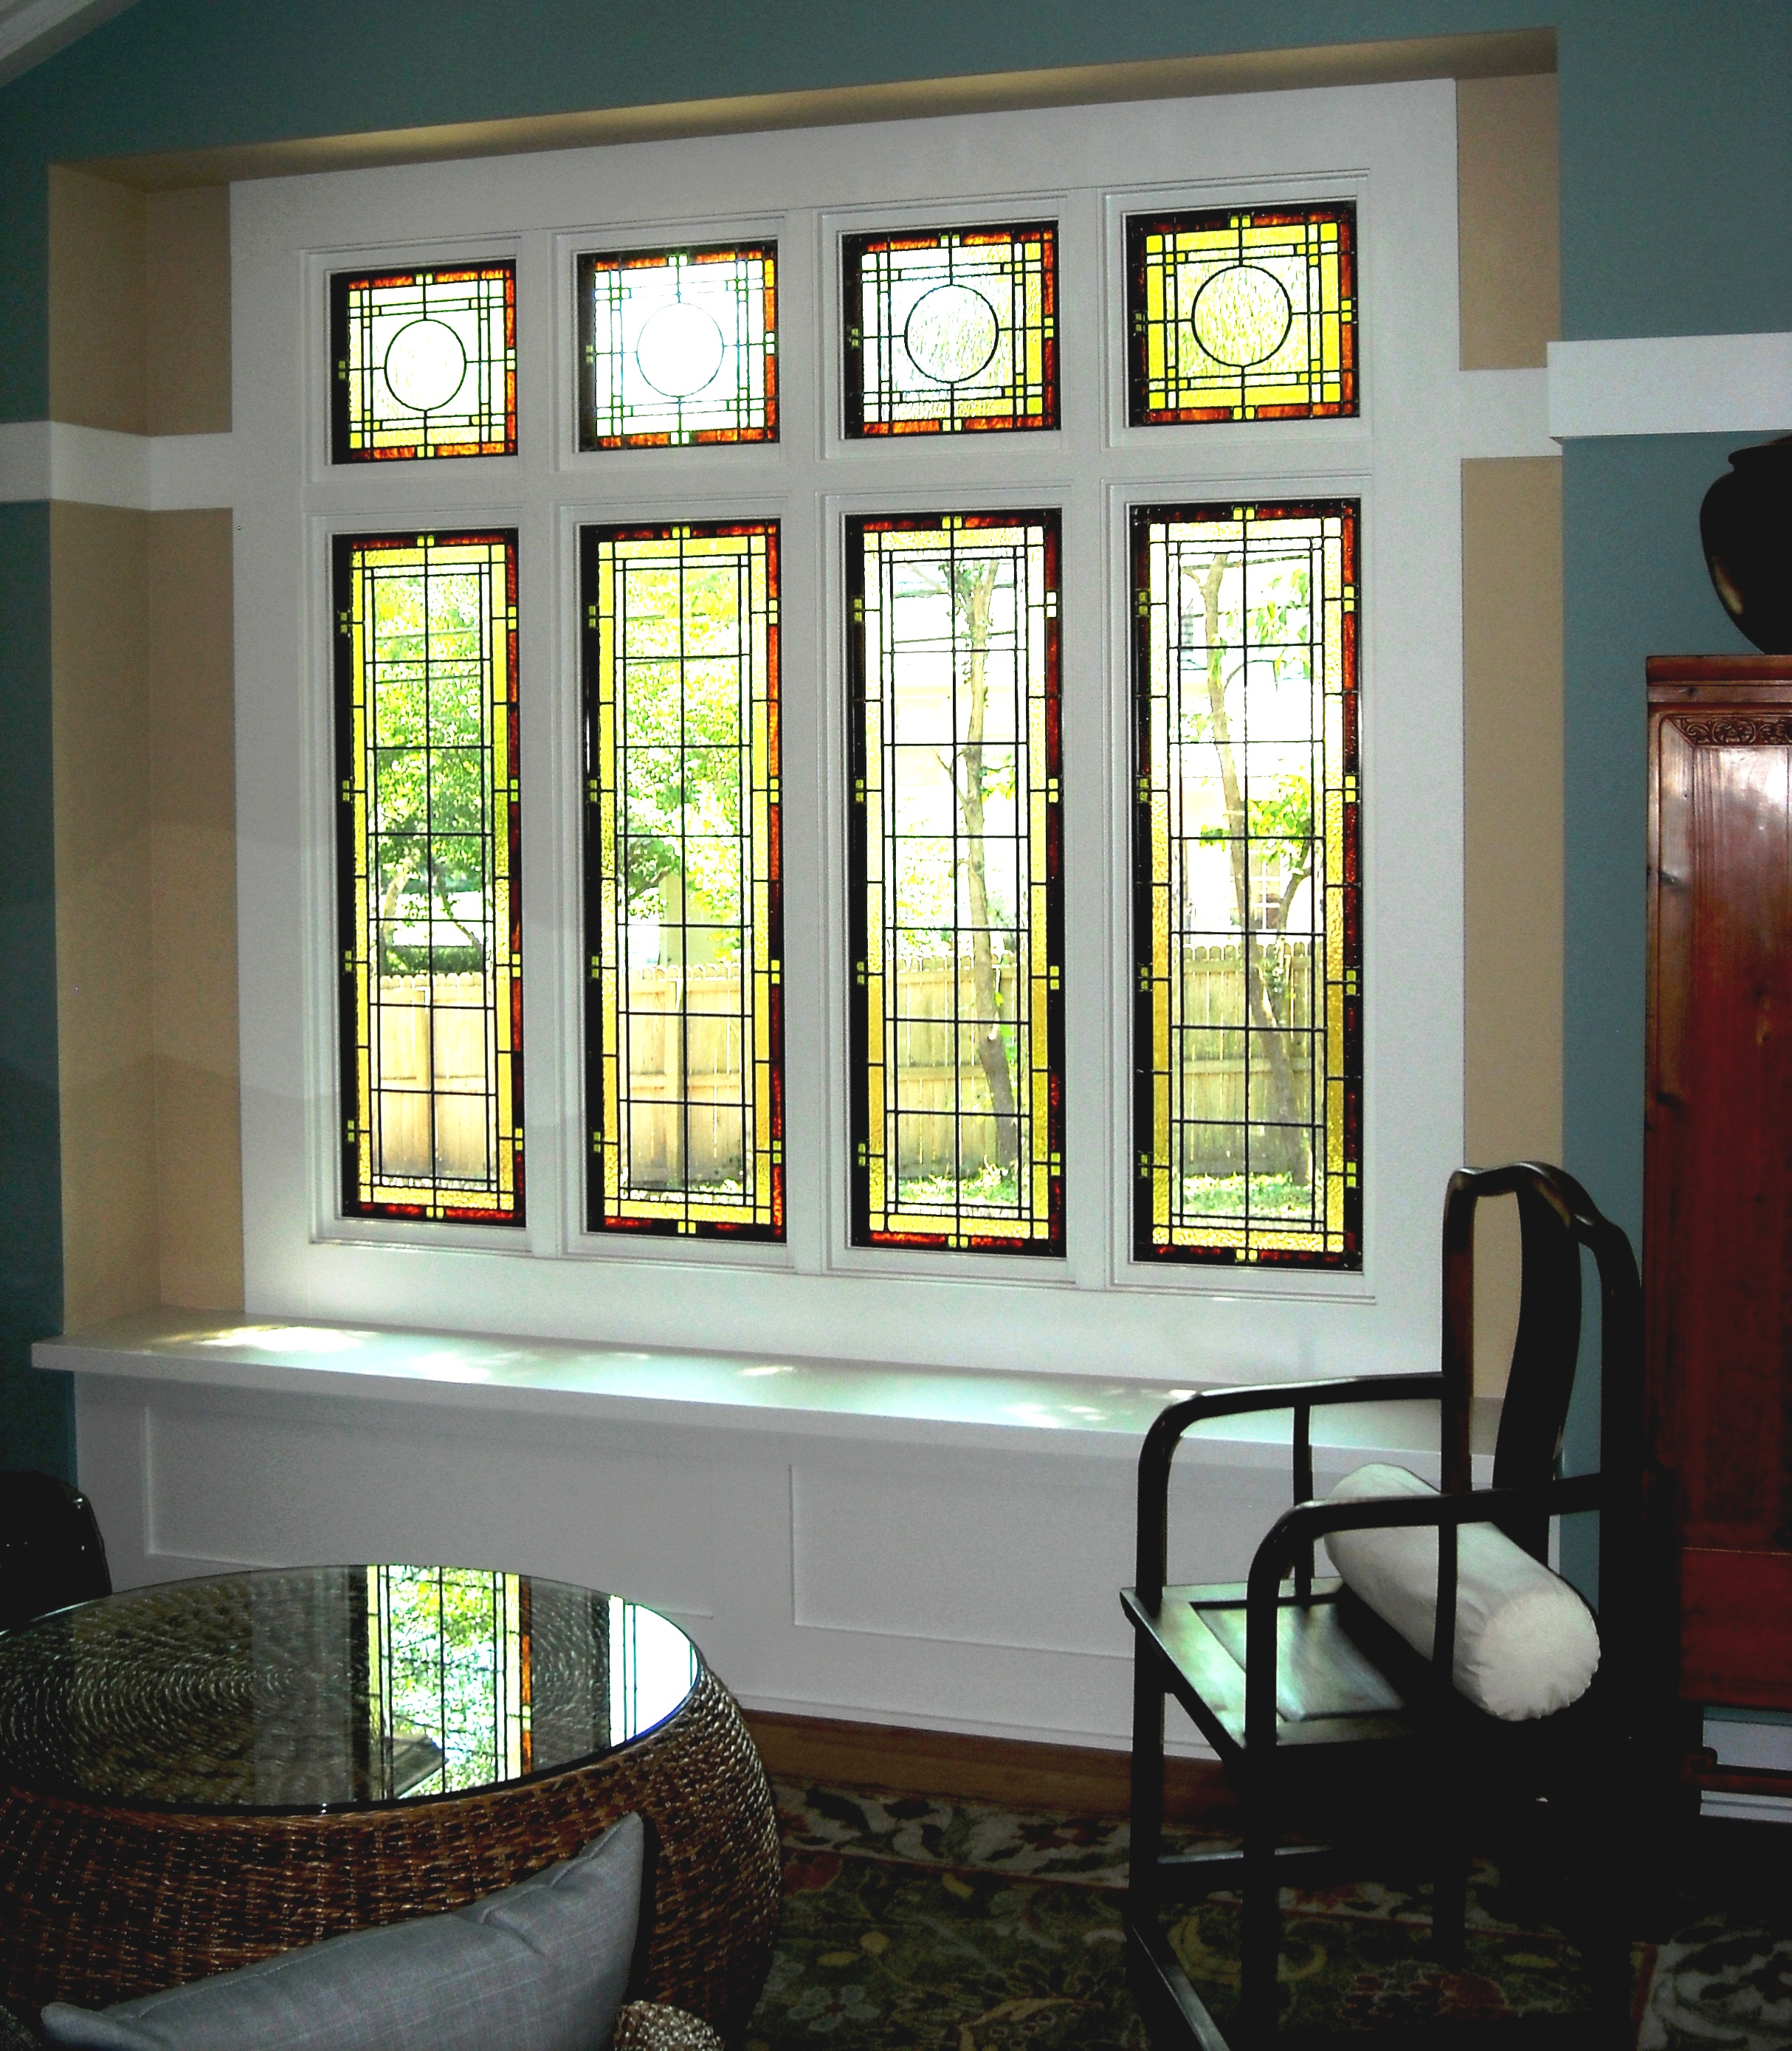 Advantages And Disadvantages Of Stained Glass Windows For